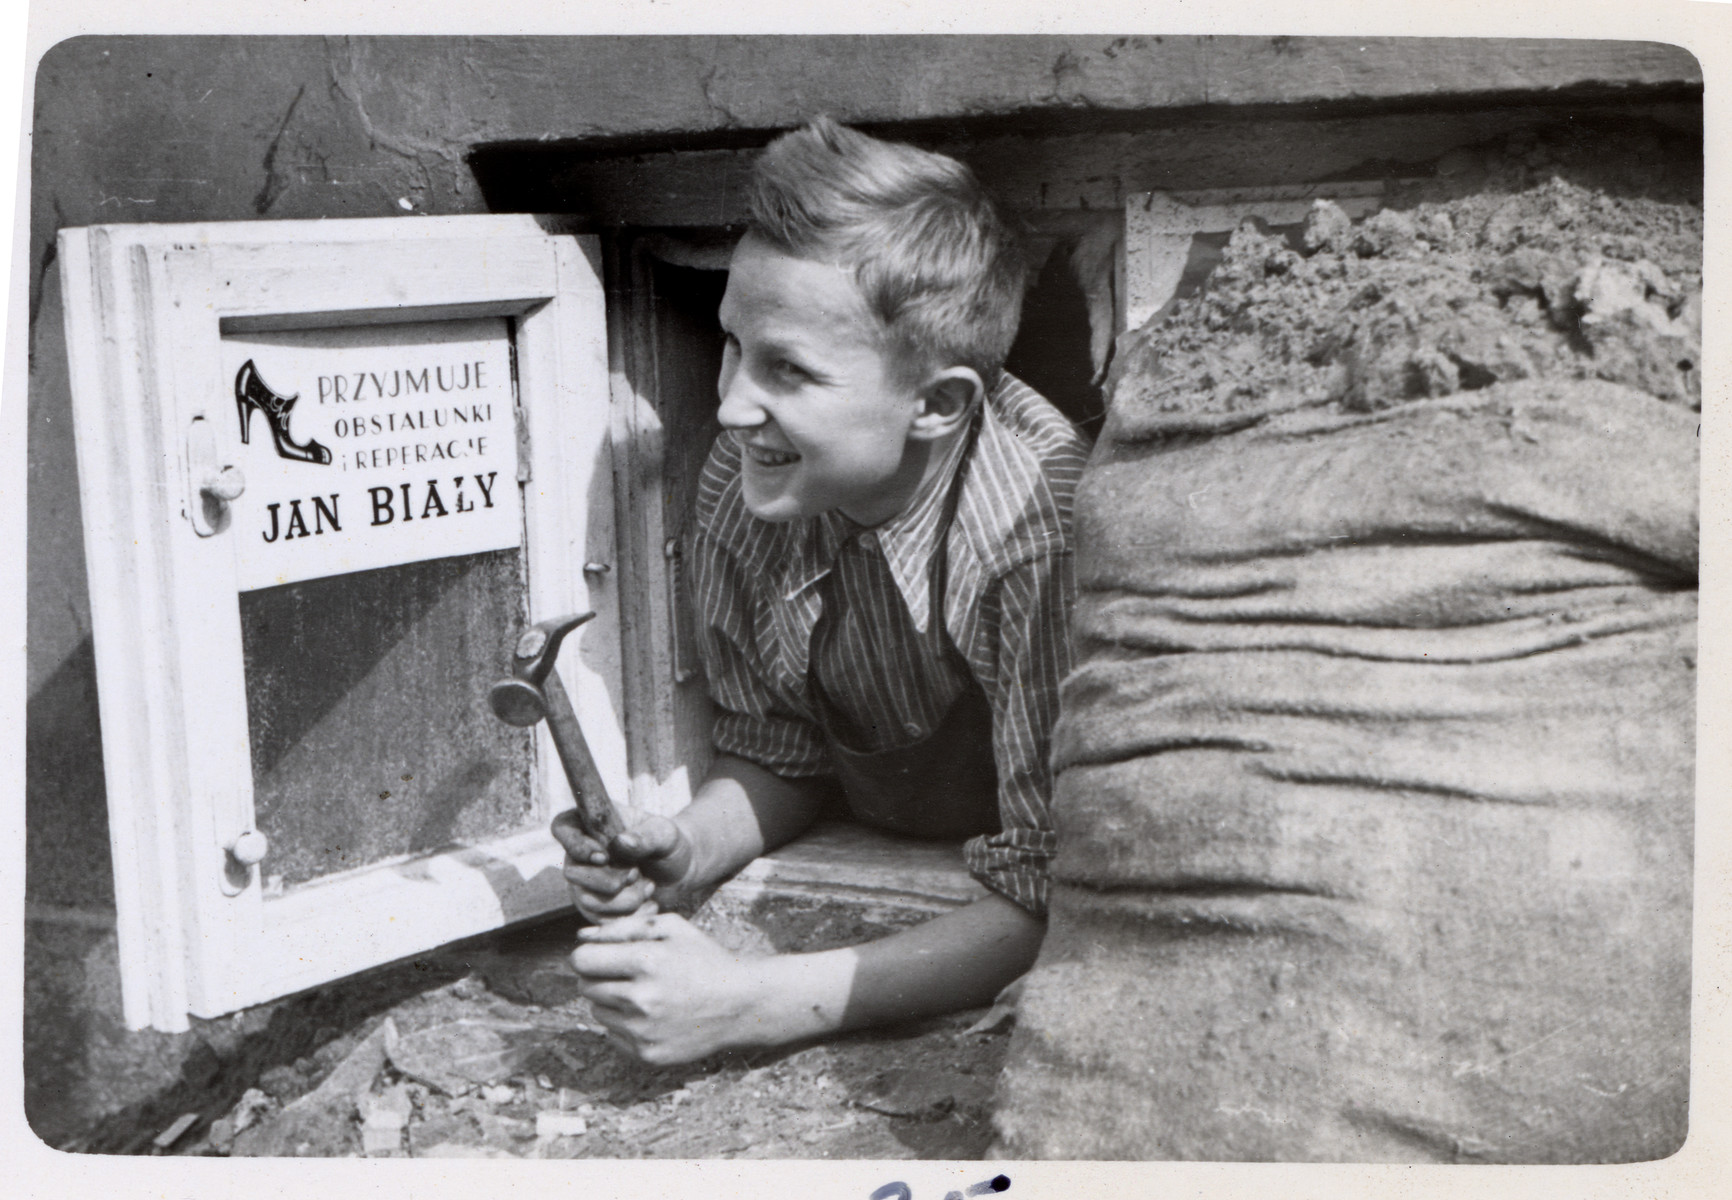 A young Polish cobbler looks out his window in Poland.